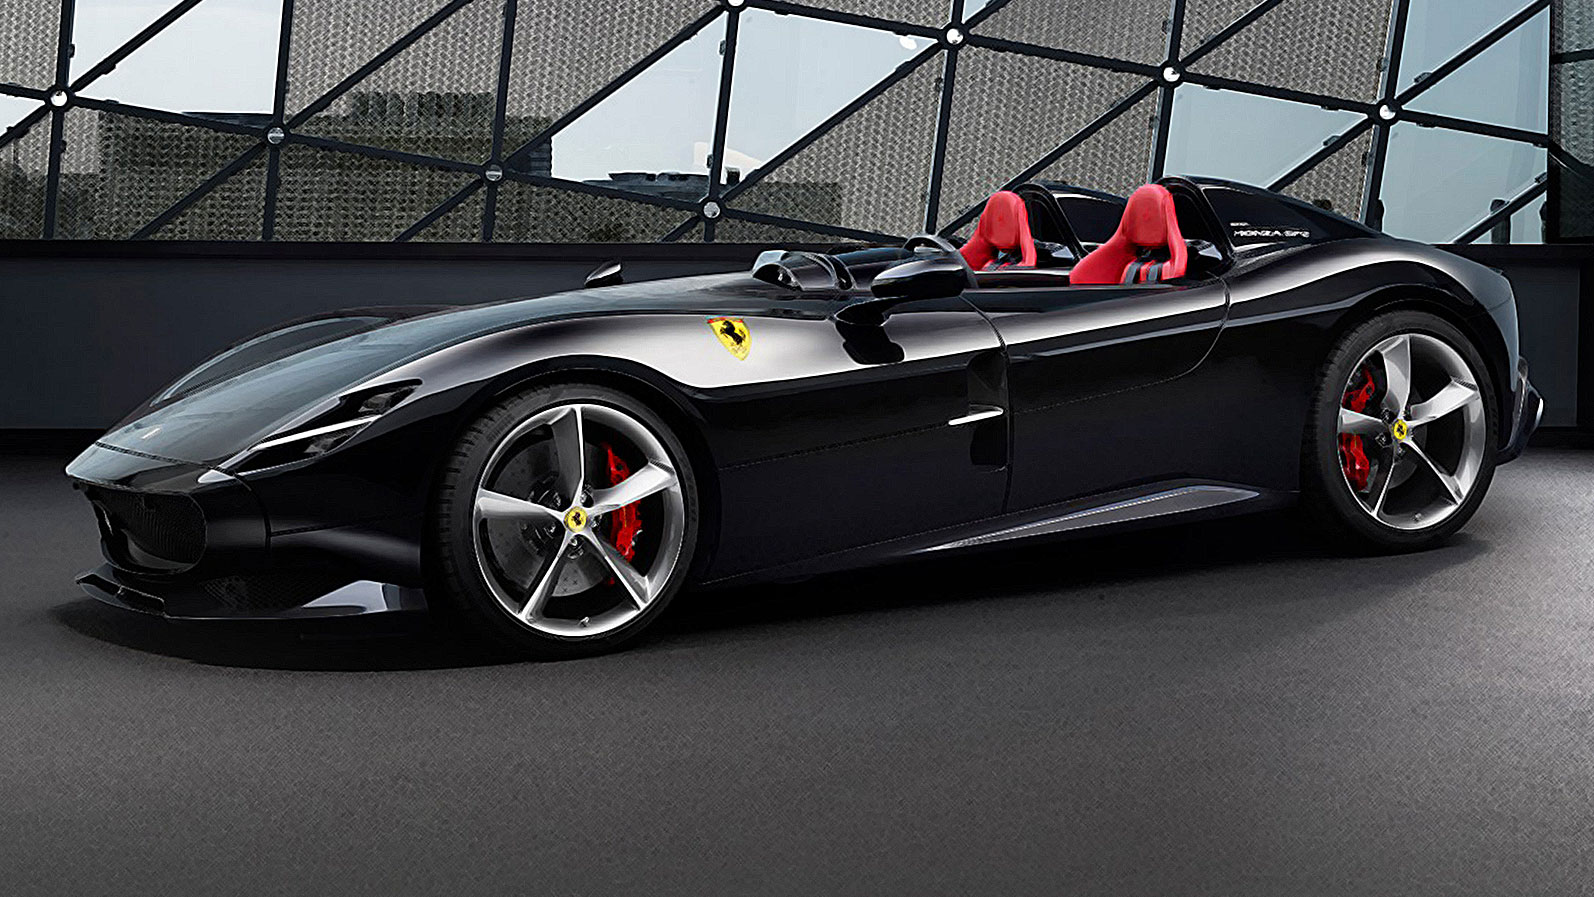 ferrari monza sp2 1 43 looksmart models. Black Bedroom Furniture Sets. Home Design Ideas